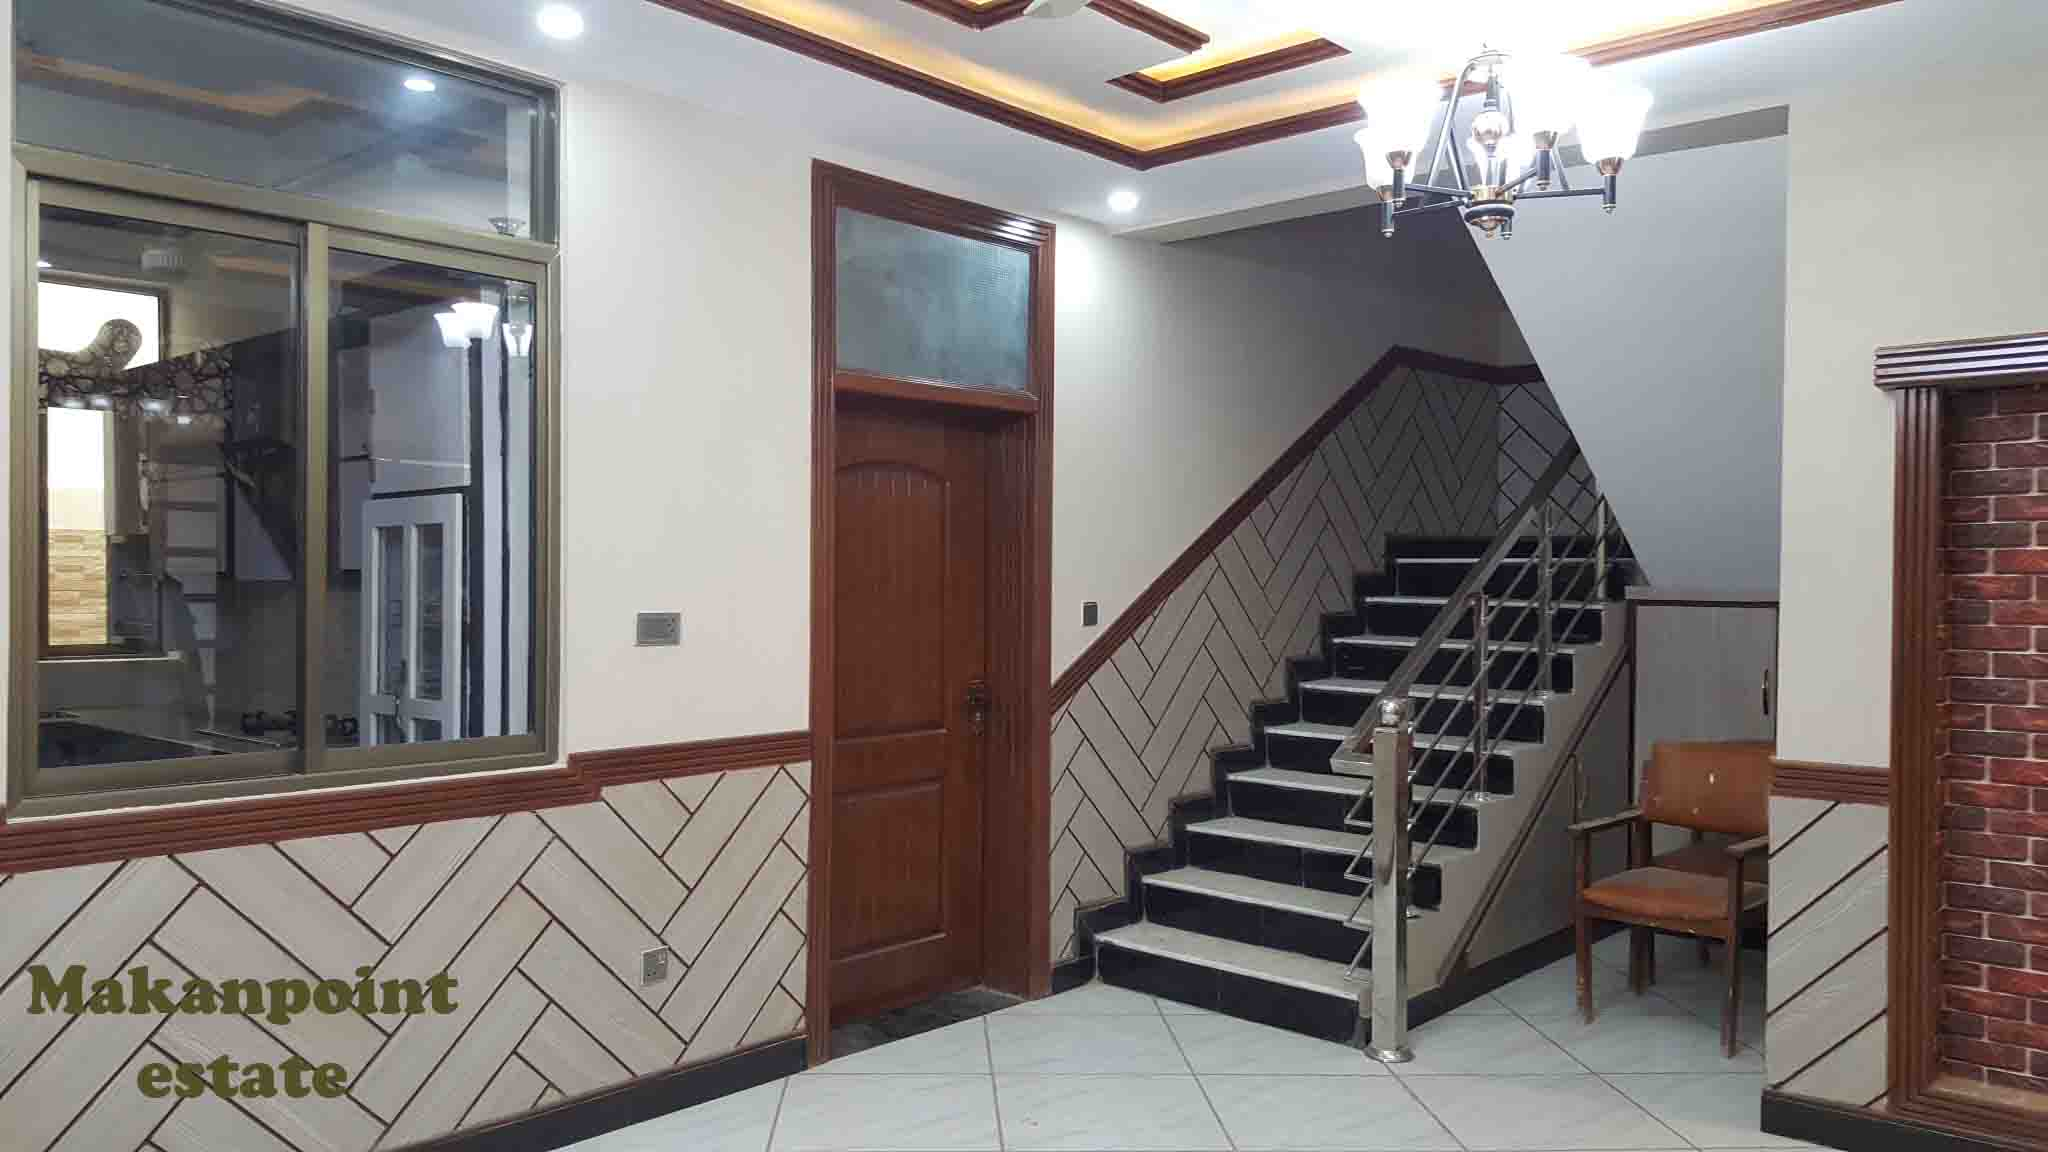 Luxruy style new bungalow for sale